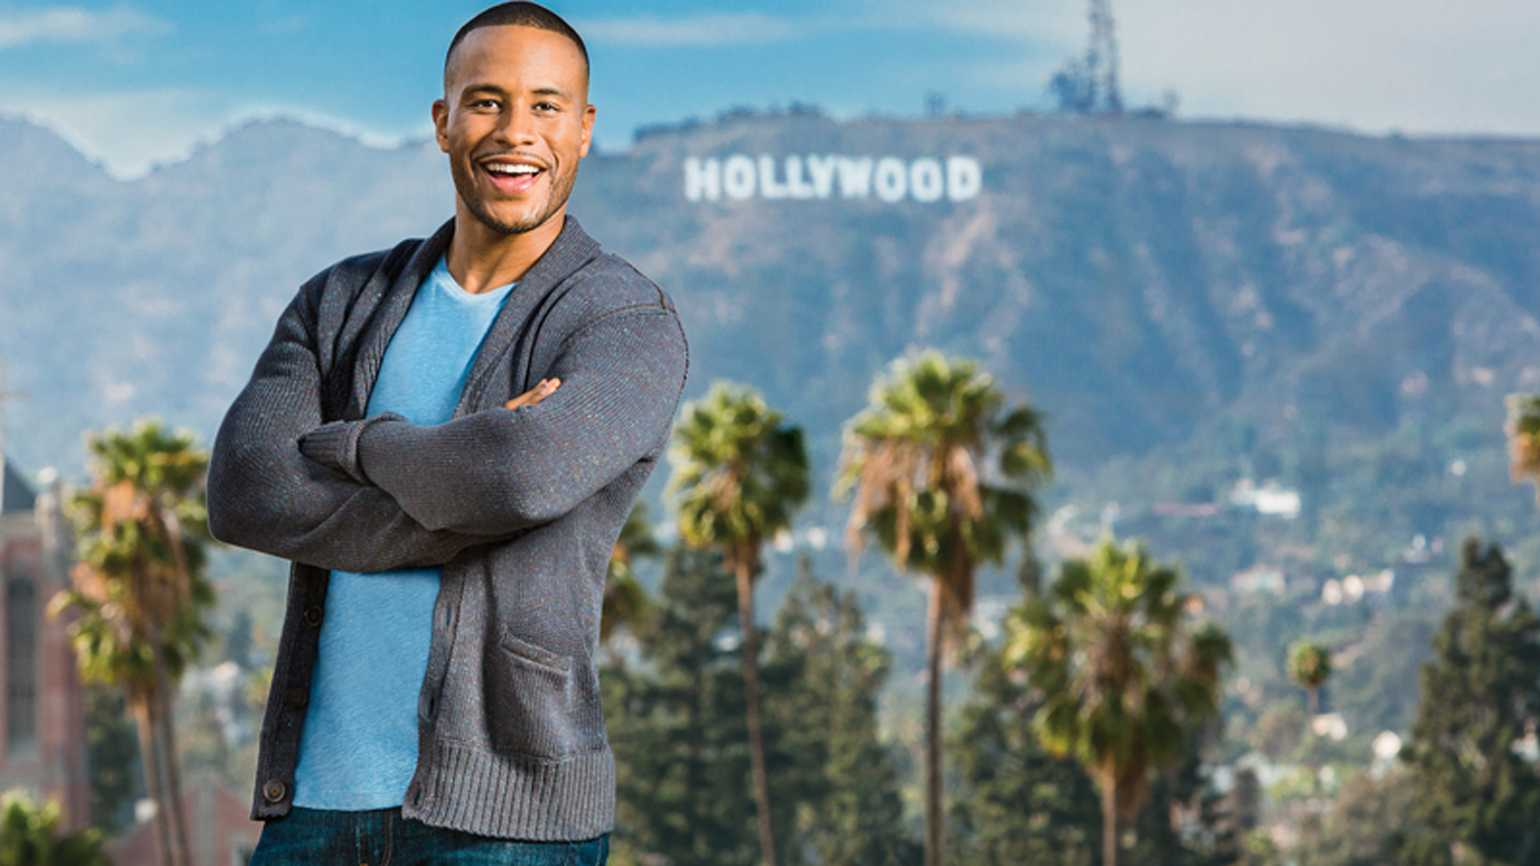 DeVon Franklin poses with the landmark Hollywood sign behind him.